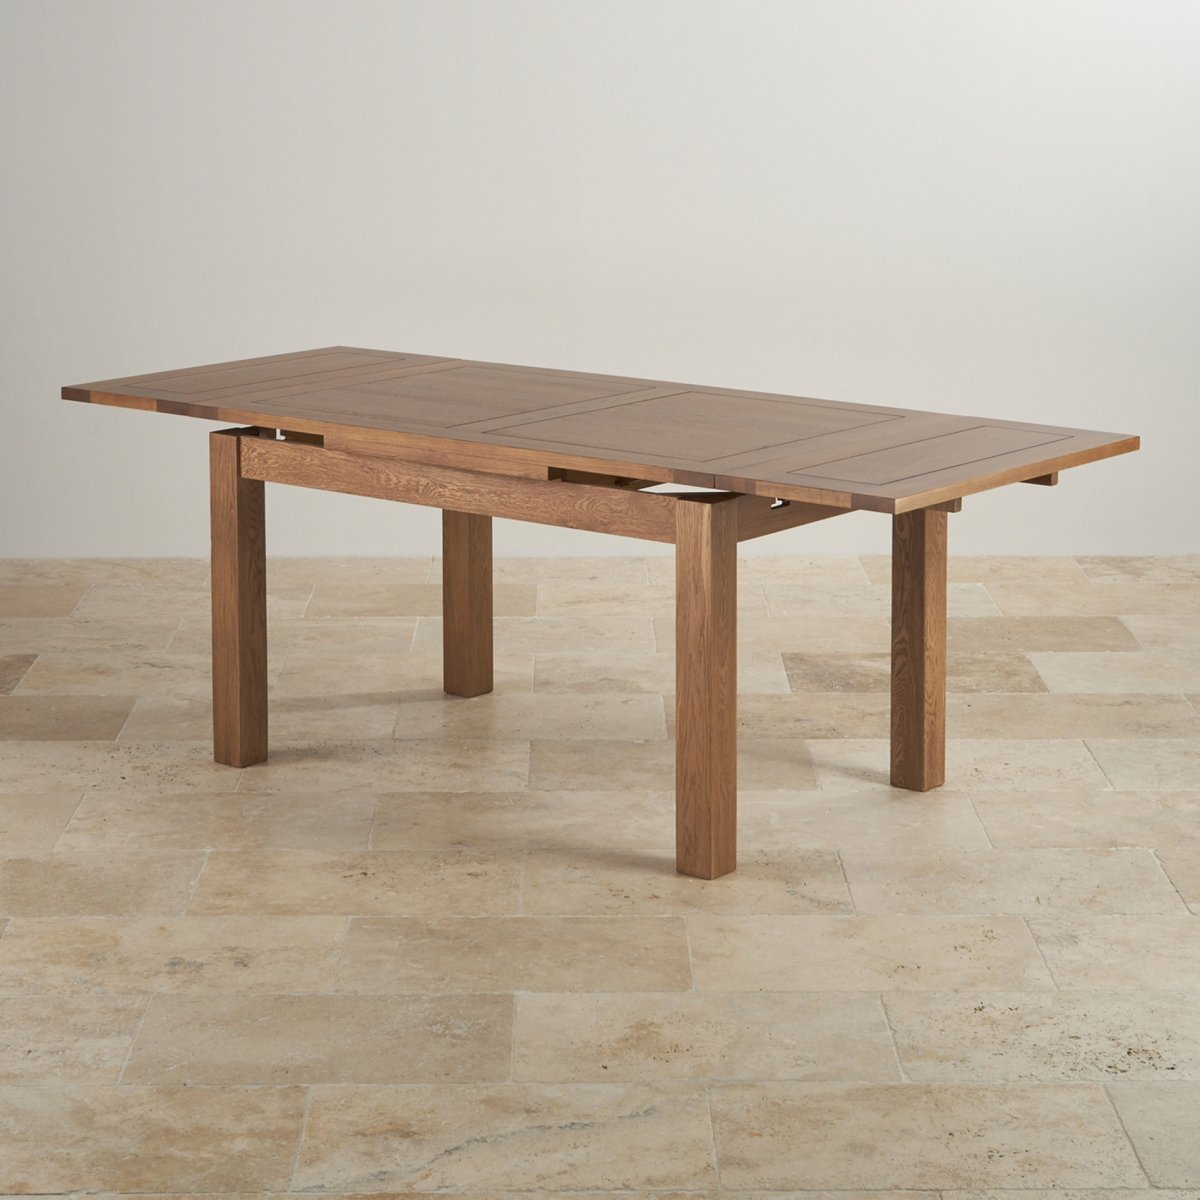 Rustic extending dining table in real oak oak furniture land for Table induction 71 x 52